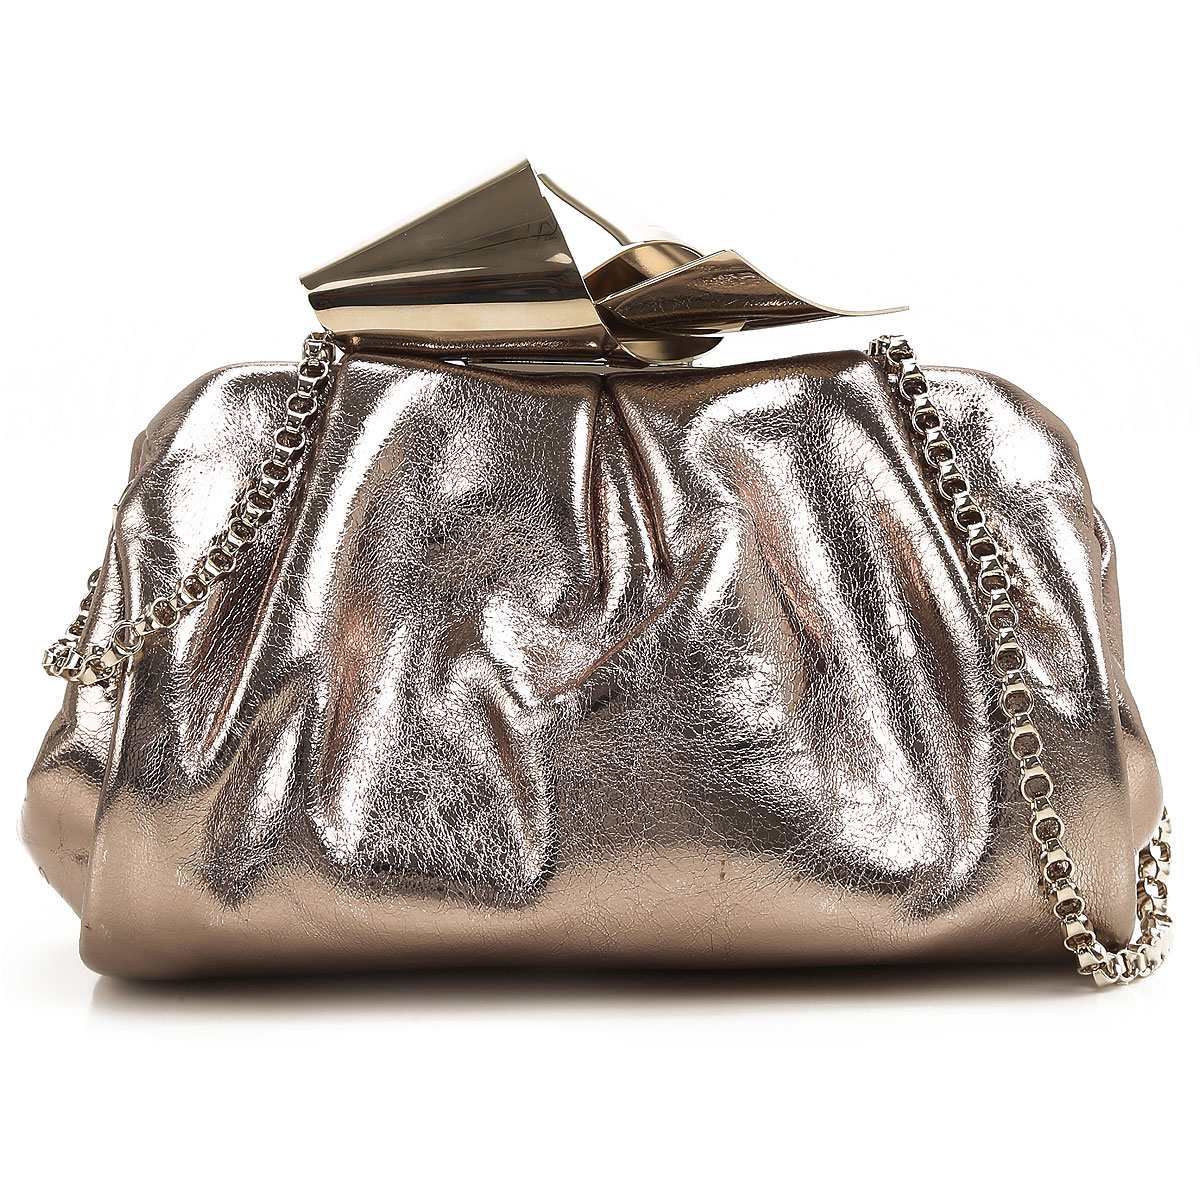 Jimmy Choo Clutch Bag On Sale in Outlet, Cara Clutch, Golden, Metallic Leather, 2019